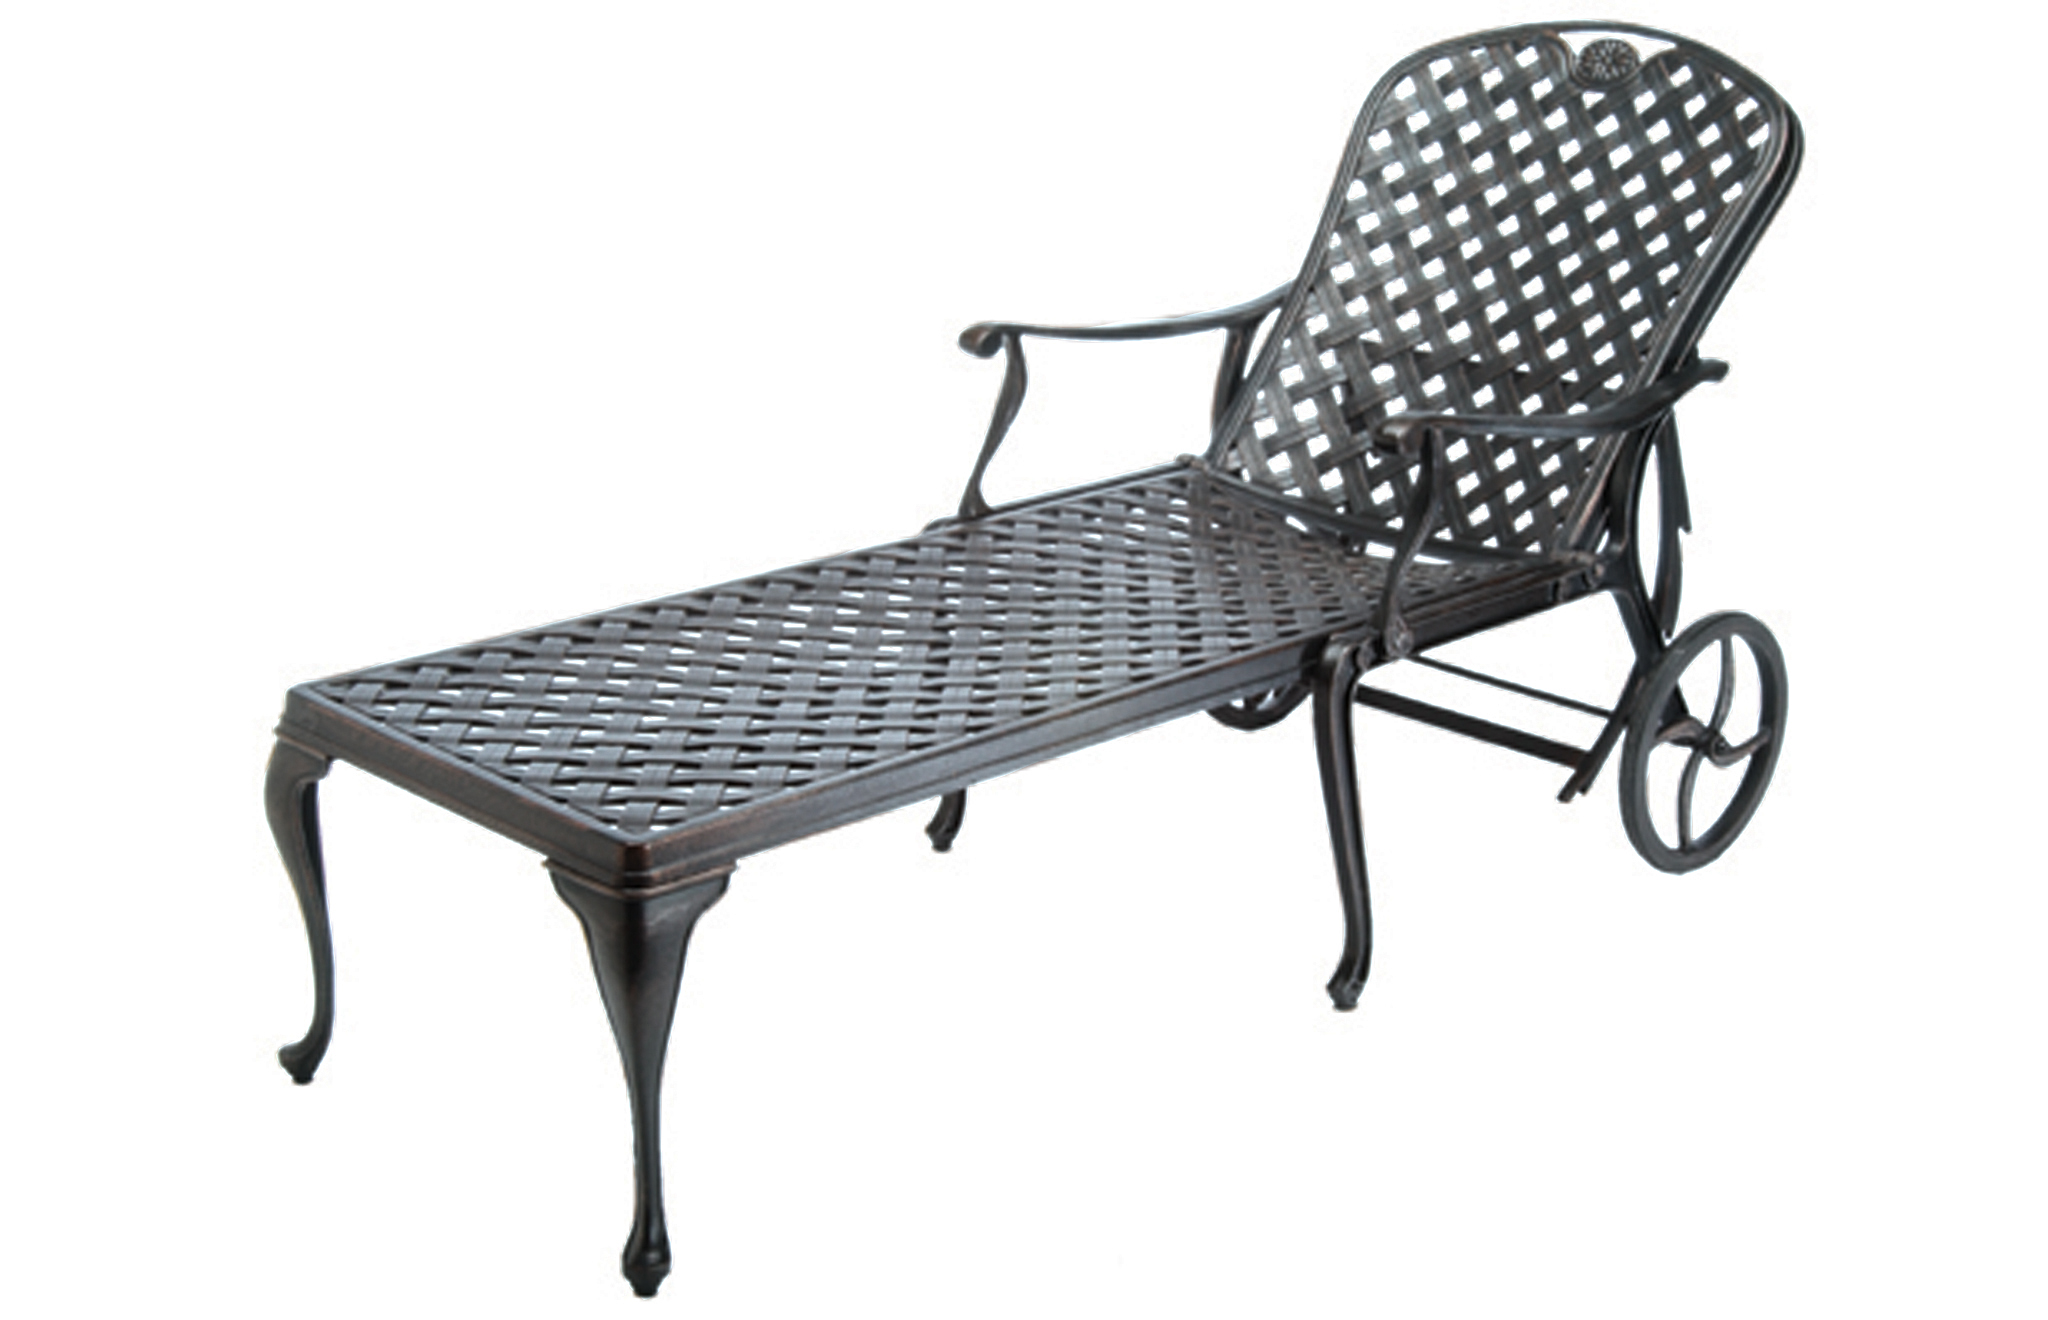 Sedona 5 Cast Aluminum Chaise Lounge Provance Collection Summer Clics Outdoor Furniture